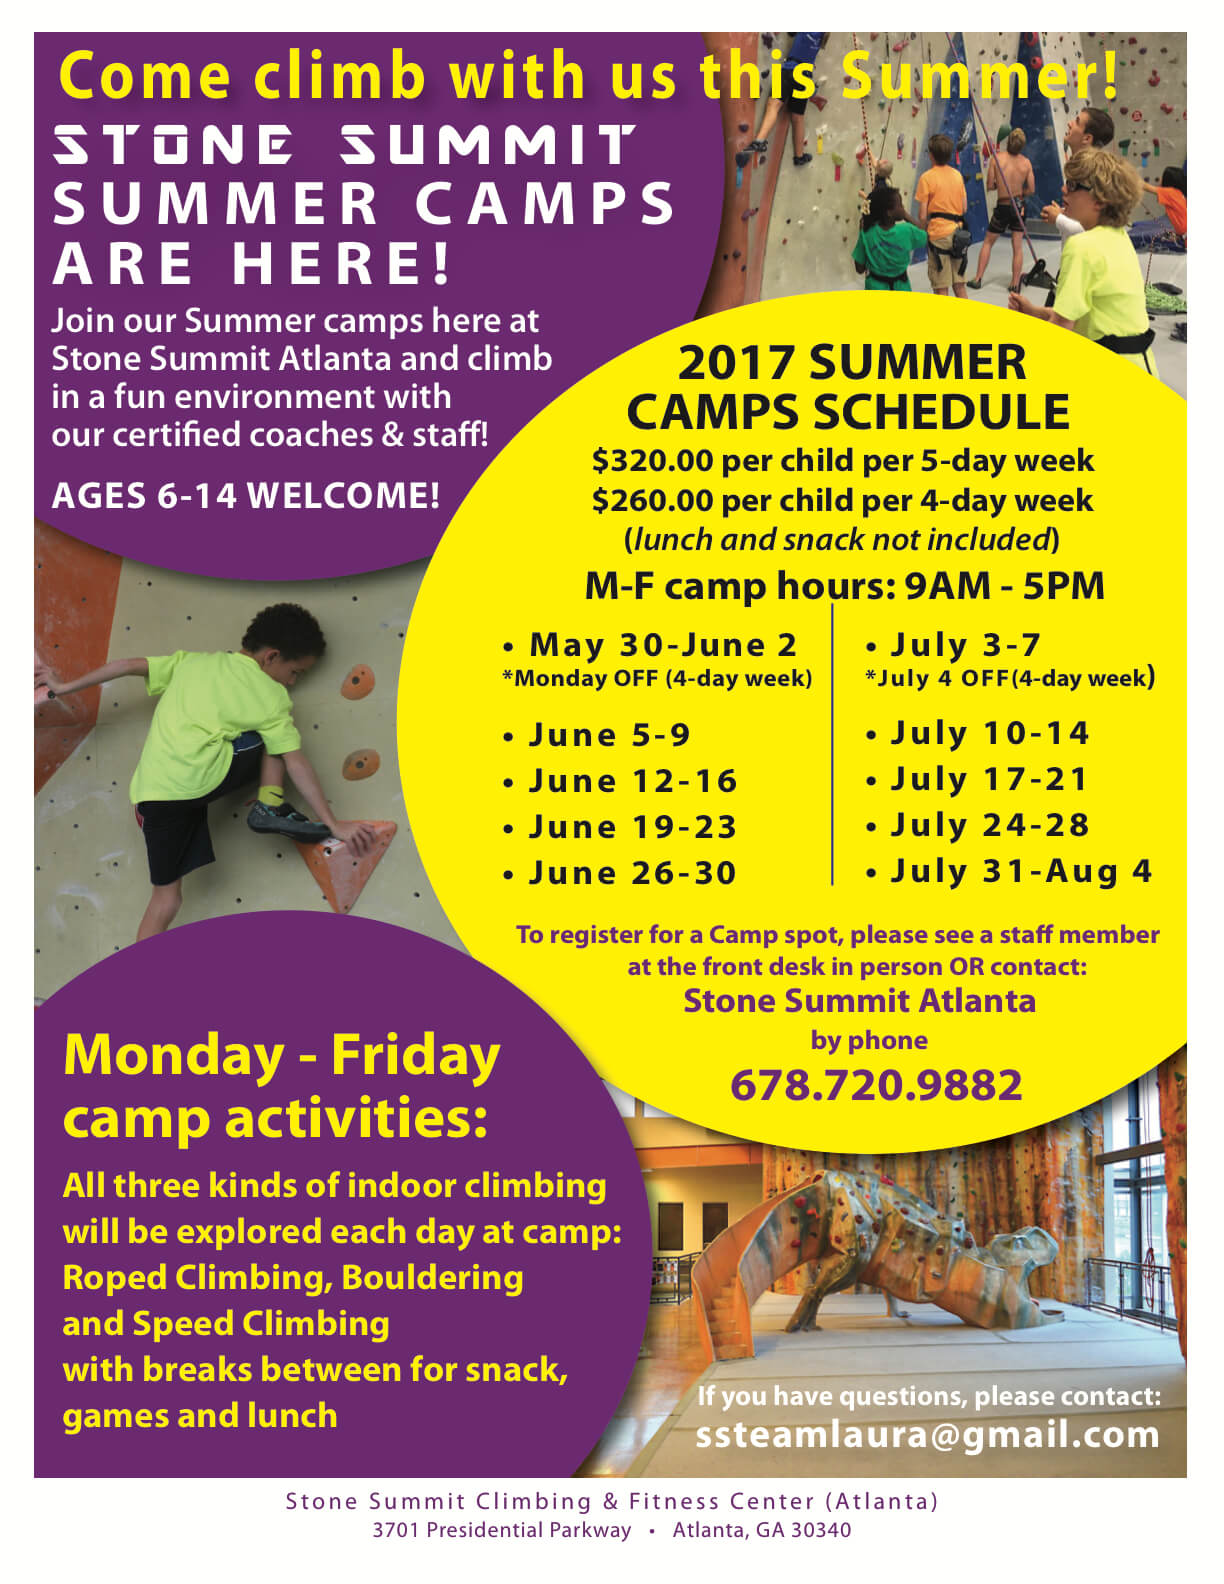 Stone Summit Summer Camp - Atlanta